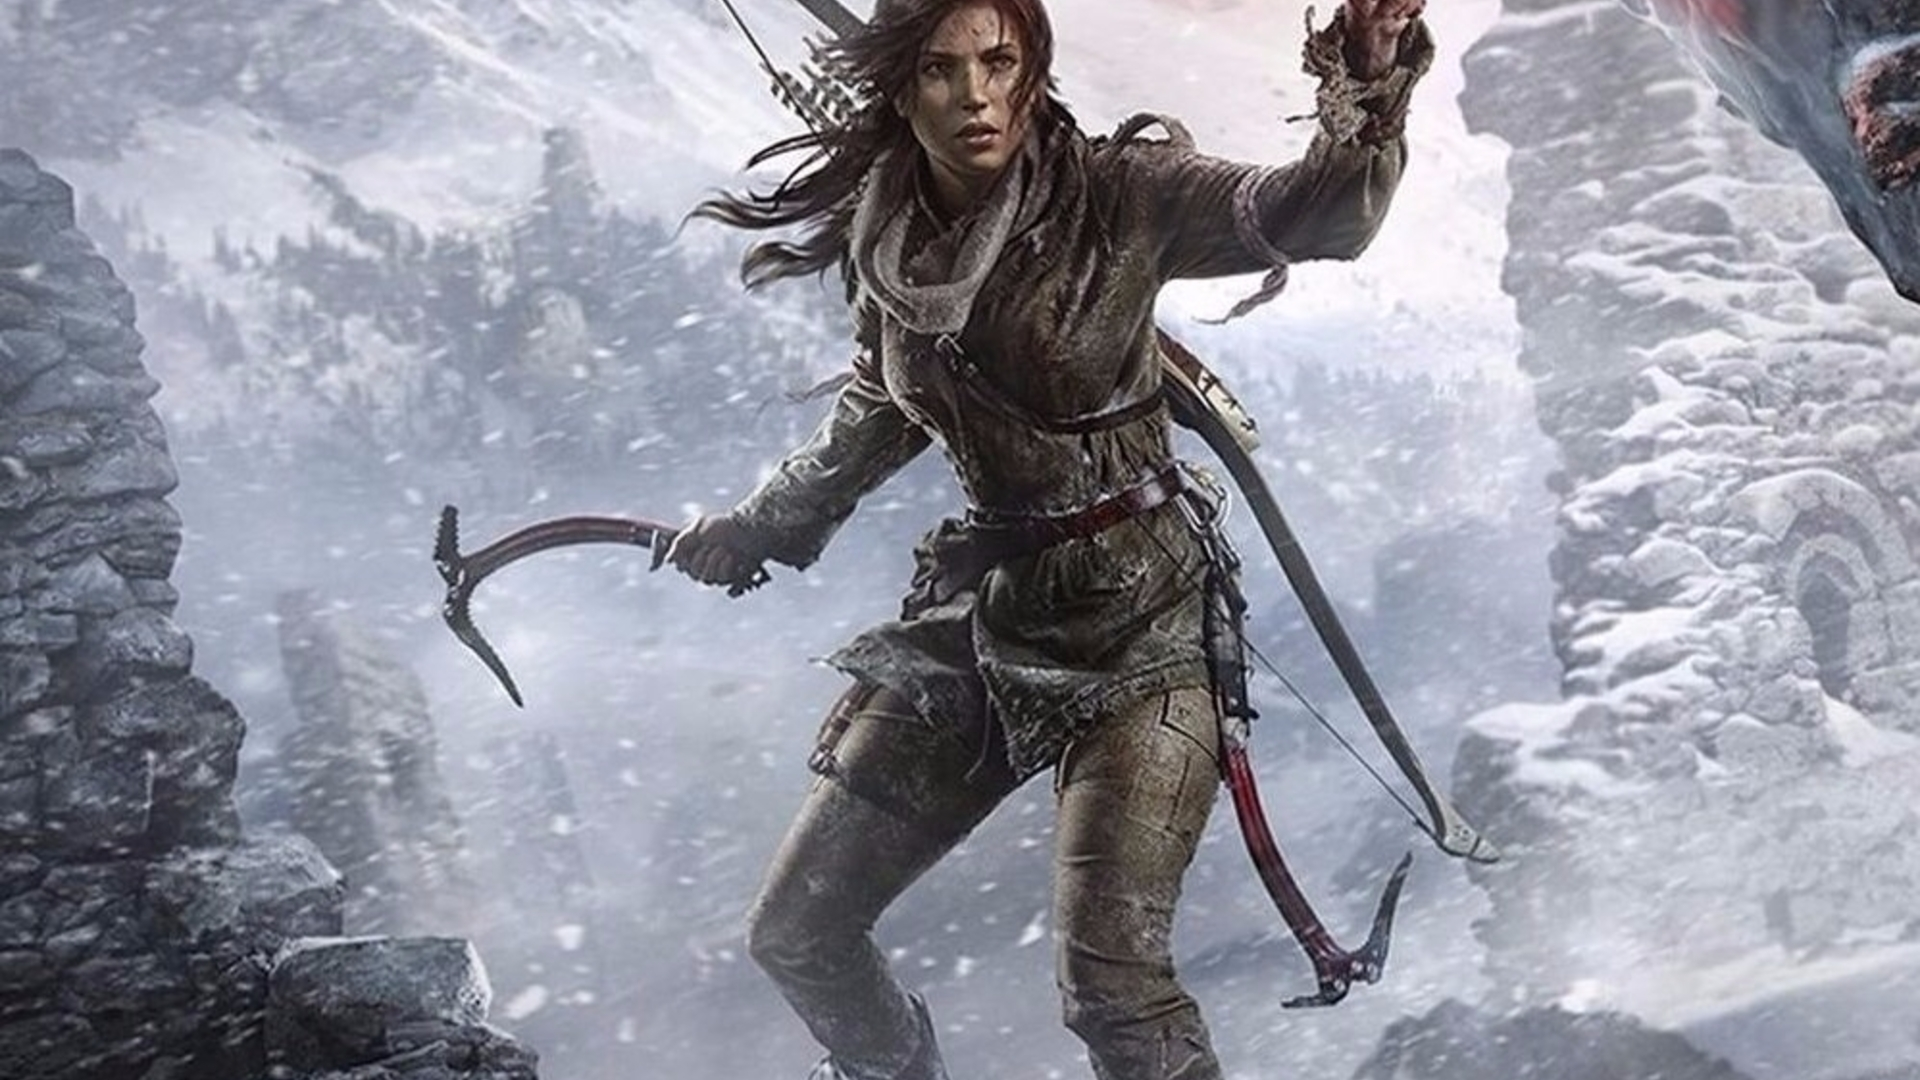 Rise Of The Tomb Raider First Ps4 Pro Vs Pc Graphics Comparison Knight Raizer Portable Ps2 3